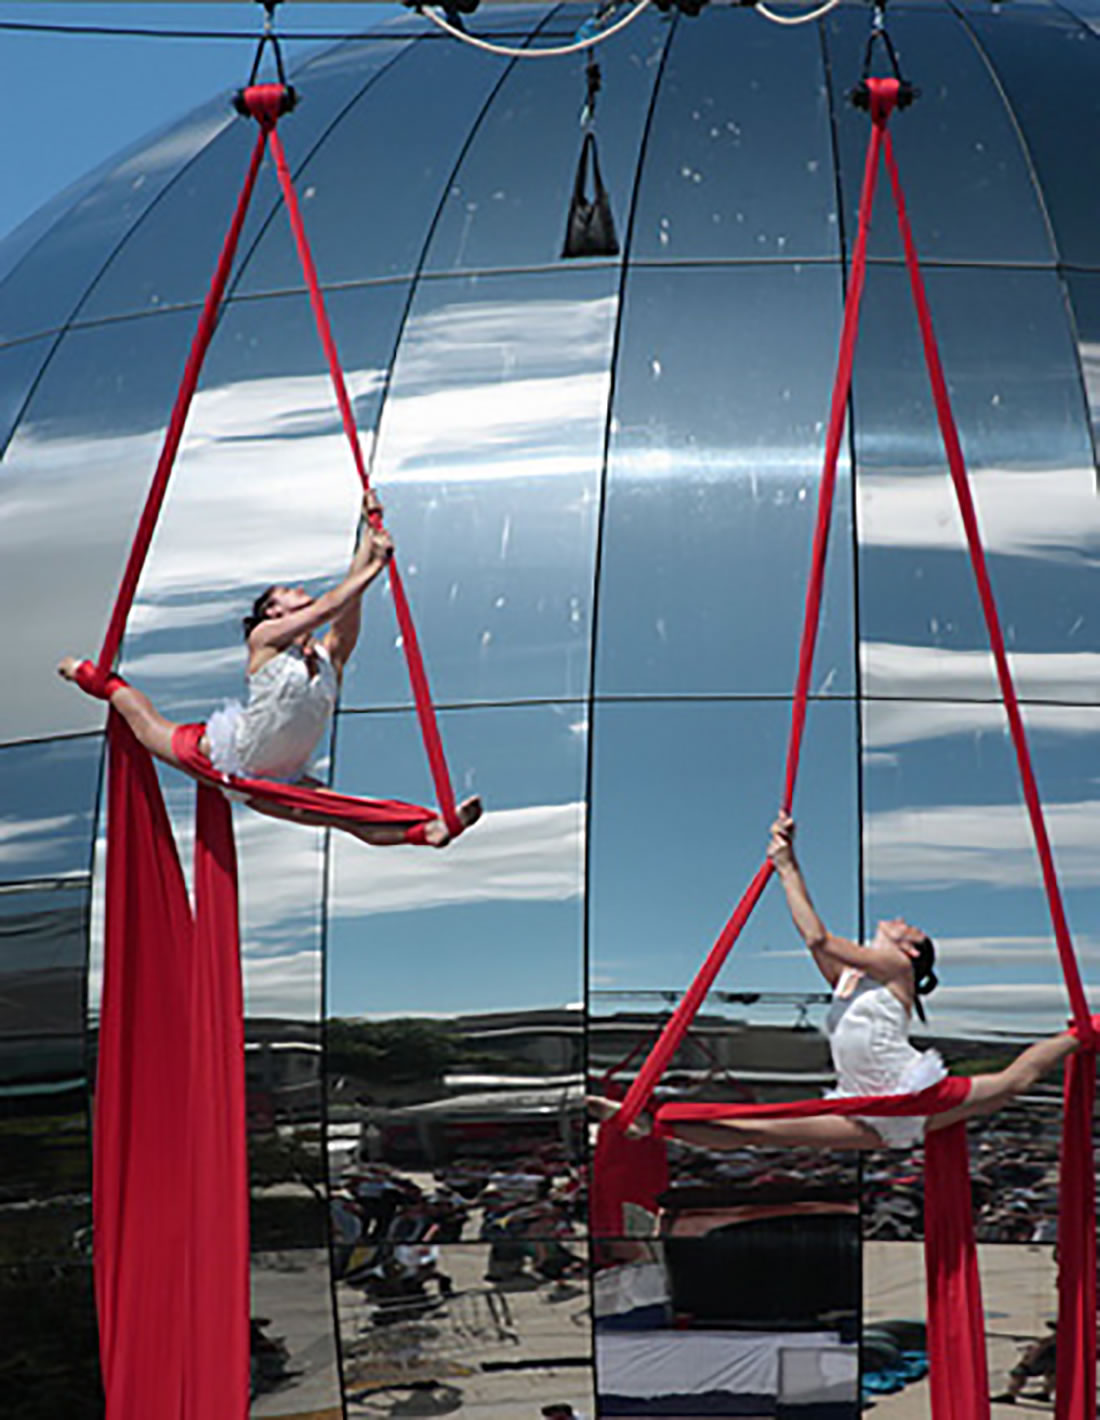 Aerial Shows - Silks Gallery - Bristol Harbourside Festival